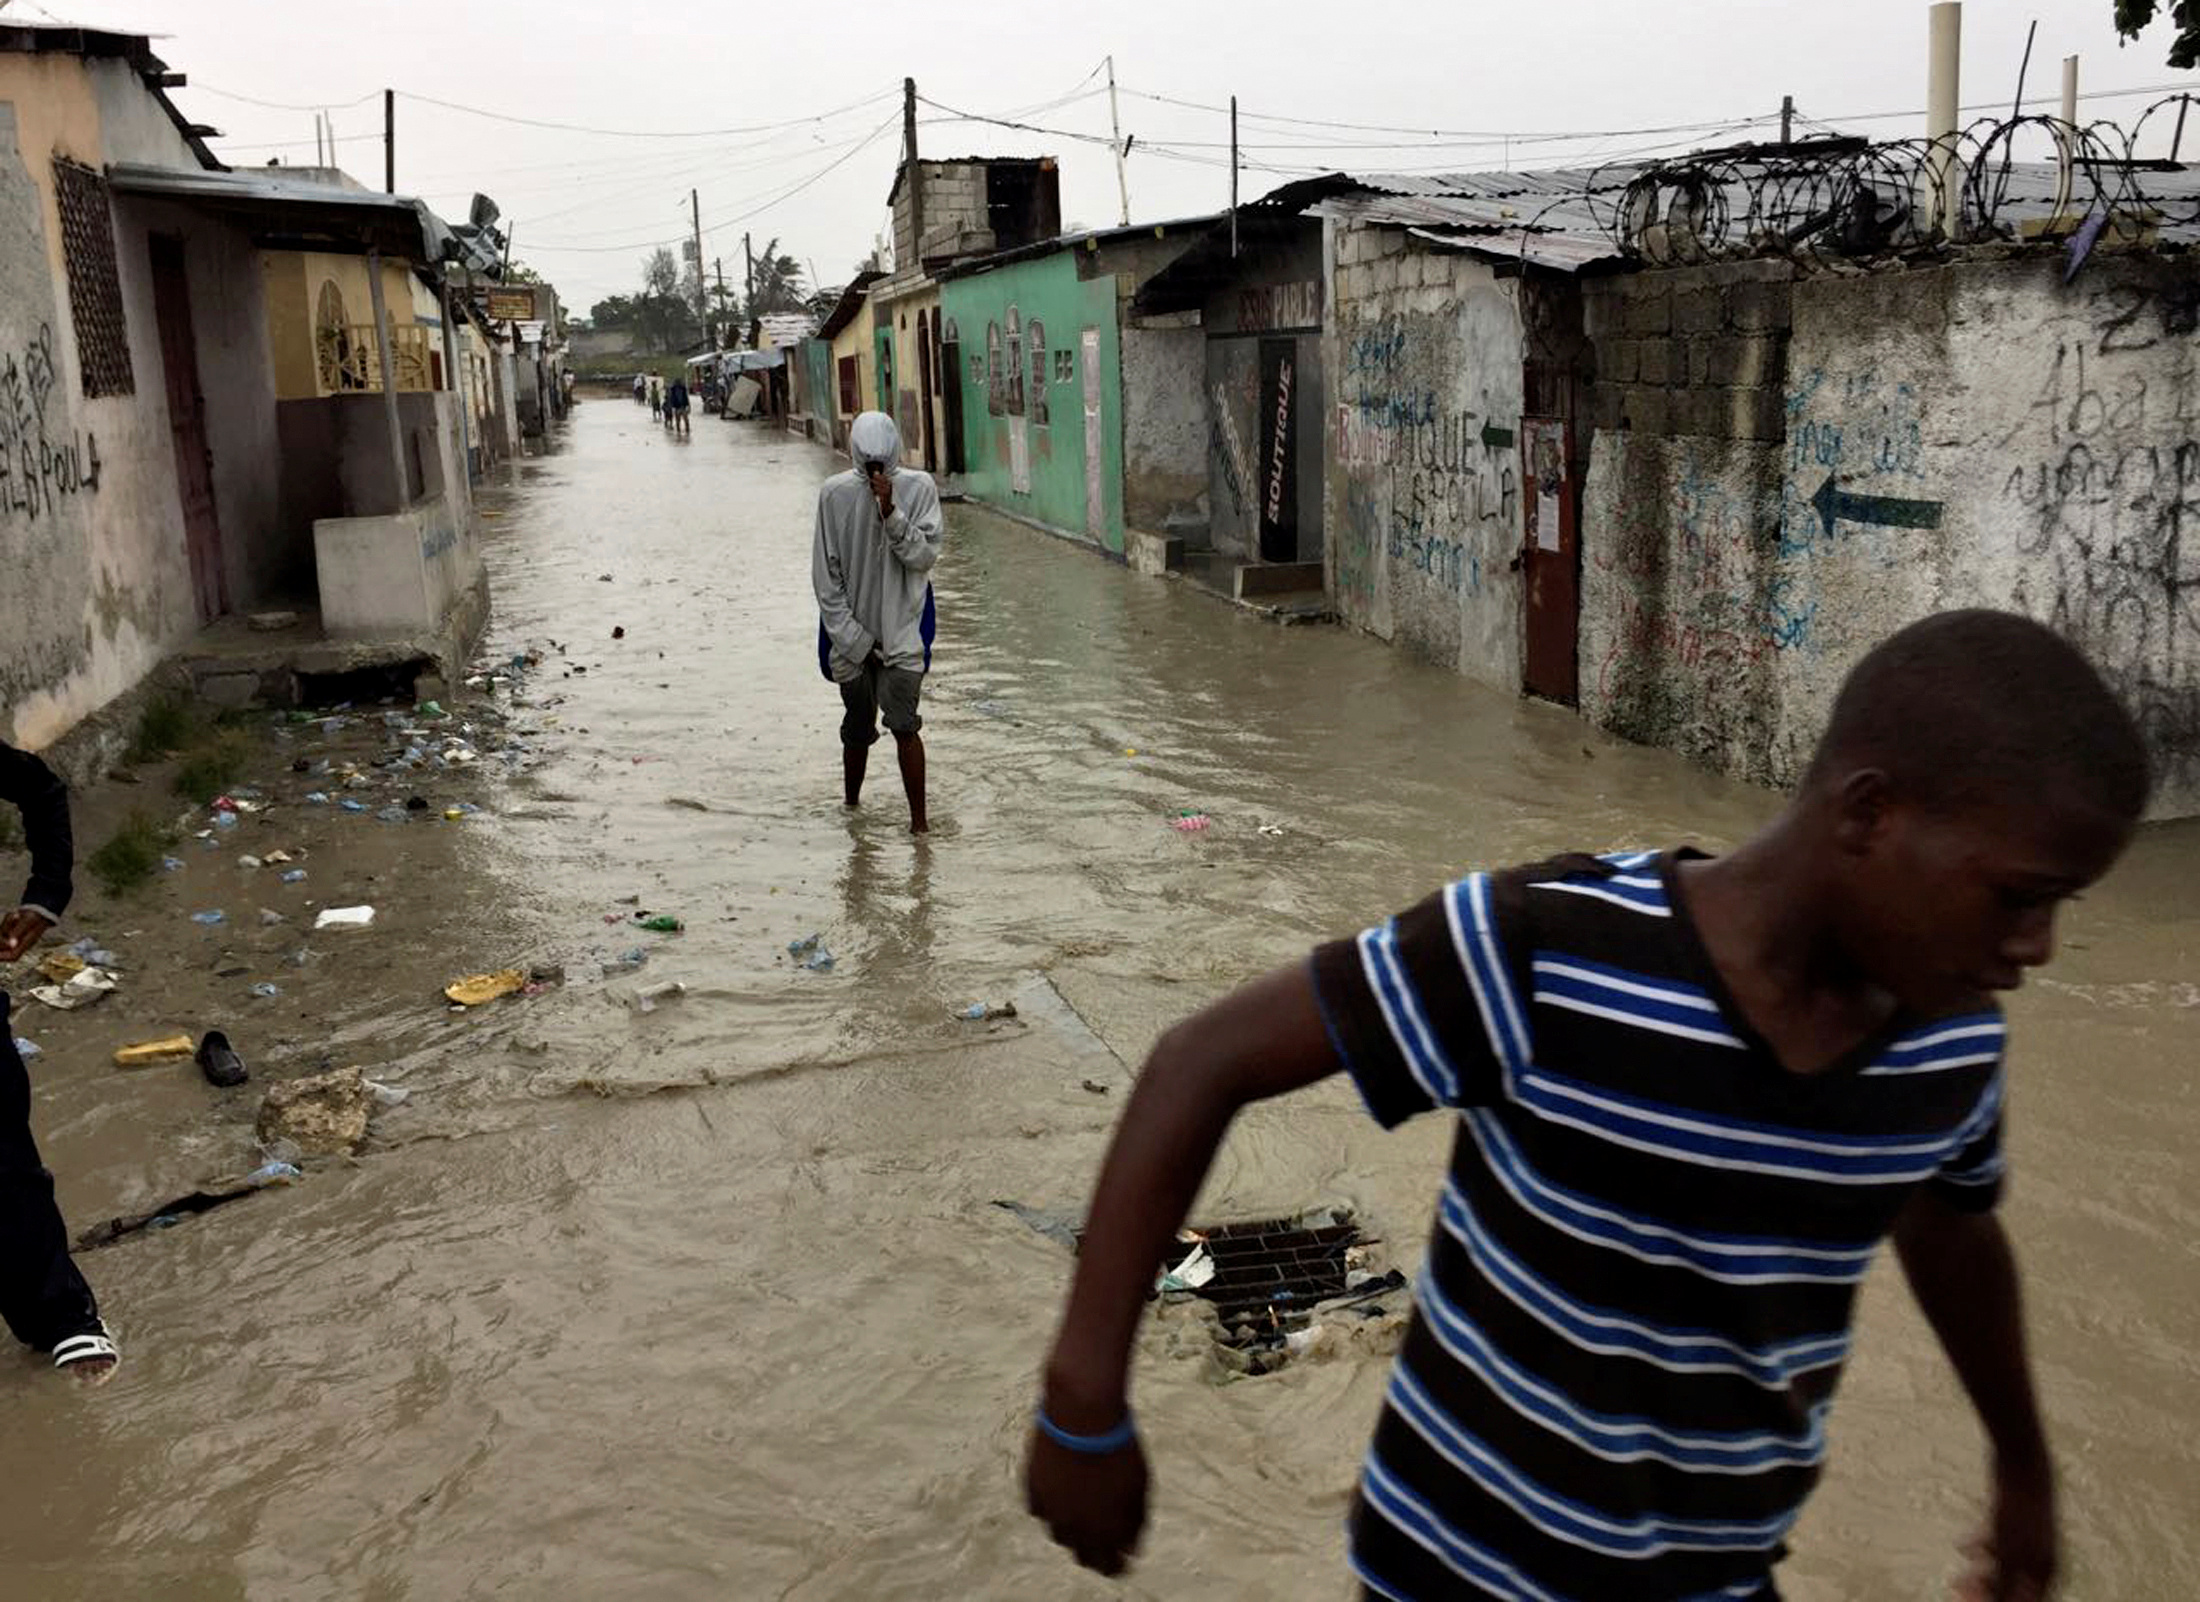 Murky water rushed through the Cite-Soleil commune on Oct. 4. Water-spread diseases are now a concern following Hurricane Matthew. Photo by Carlos Garcia Rawlins/Reuters